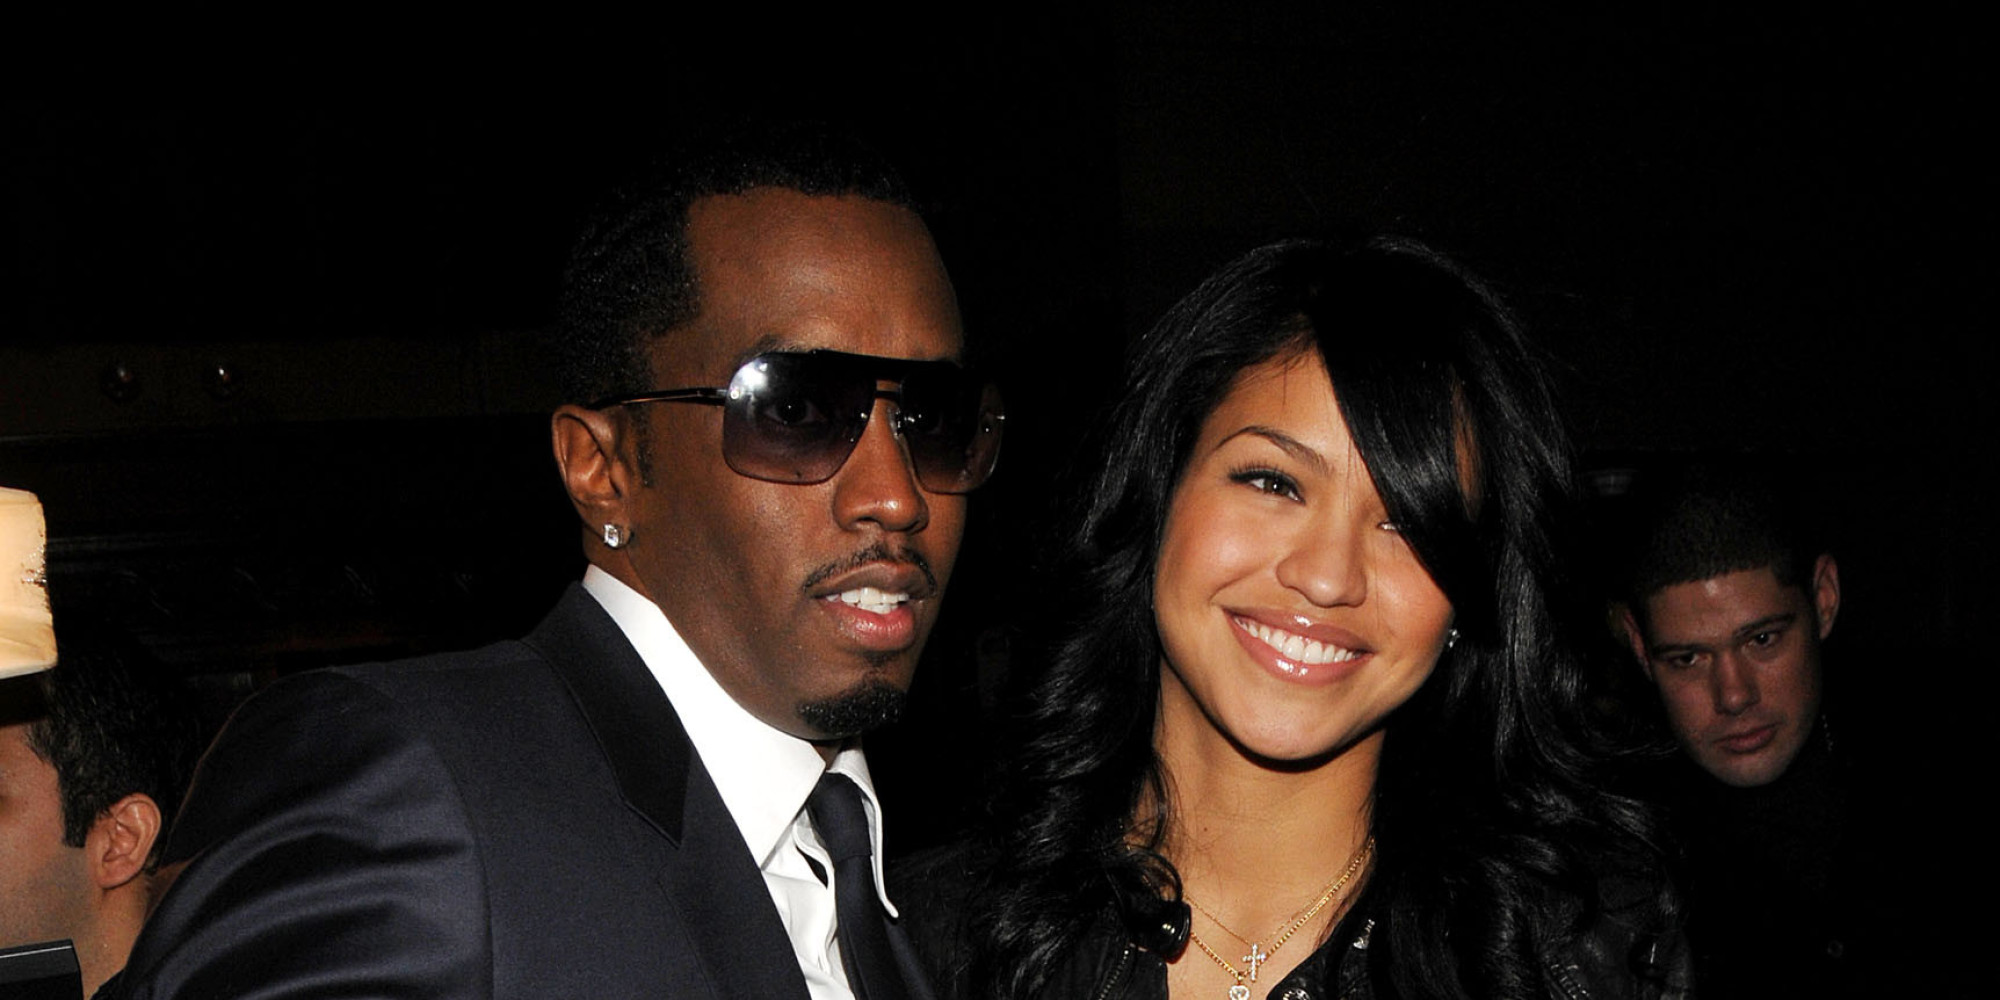 p diddy dating now Roskilde